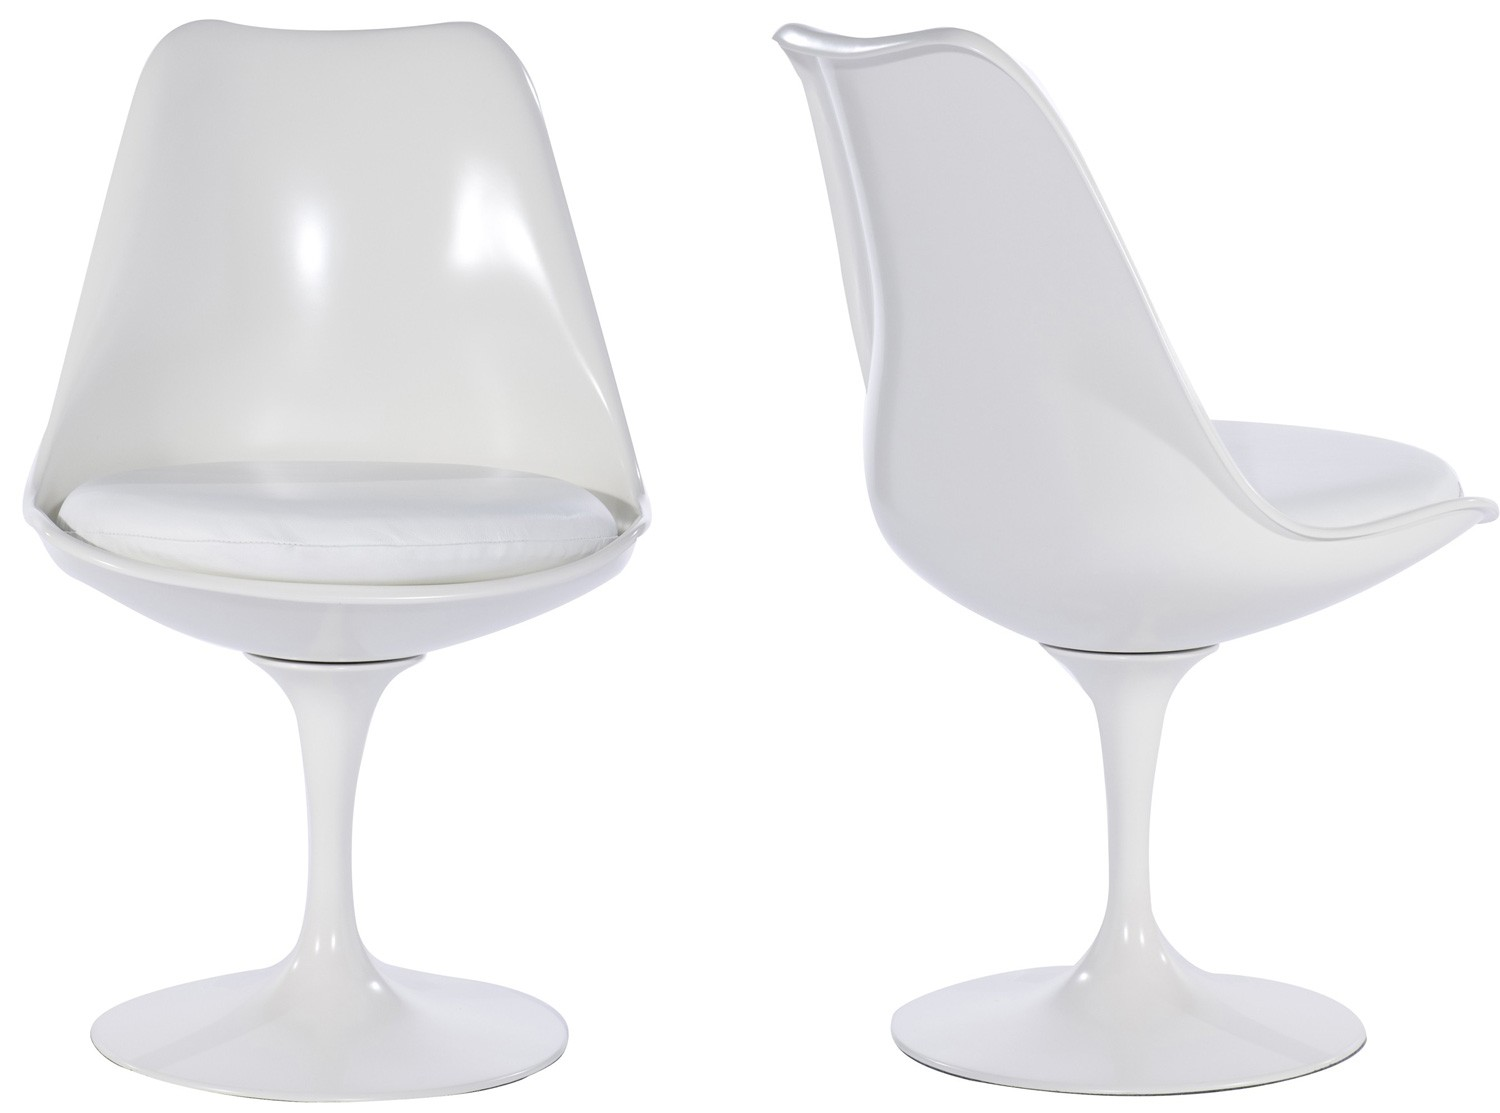 Contemporary Tulip Chair by Eero Saarinen Fiberglass (Platinum Replica) Pictured in White white tulip chair